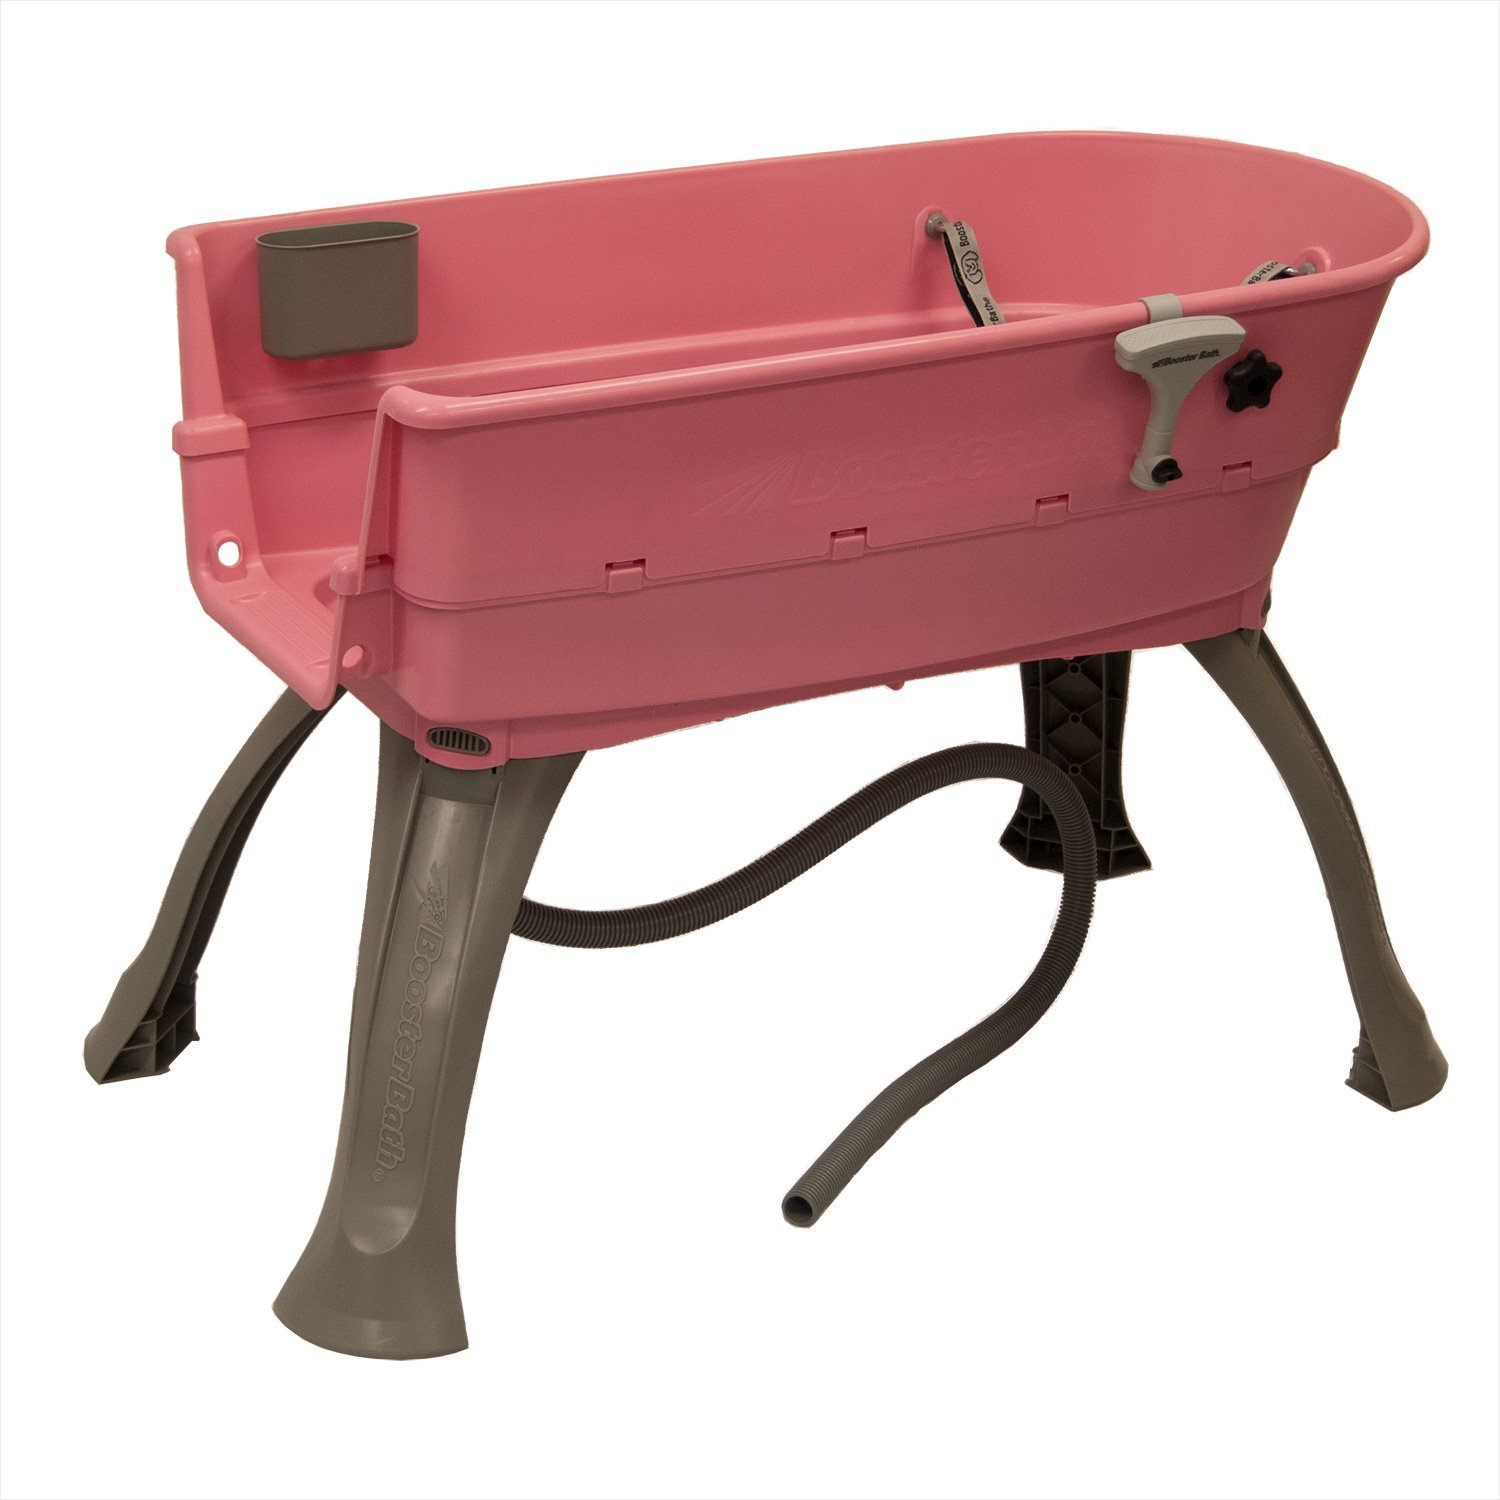 Booster Bath Large Elevated Pet Bathing Tub with 125 Pounds Capacity — Available in 4 Colors